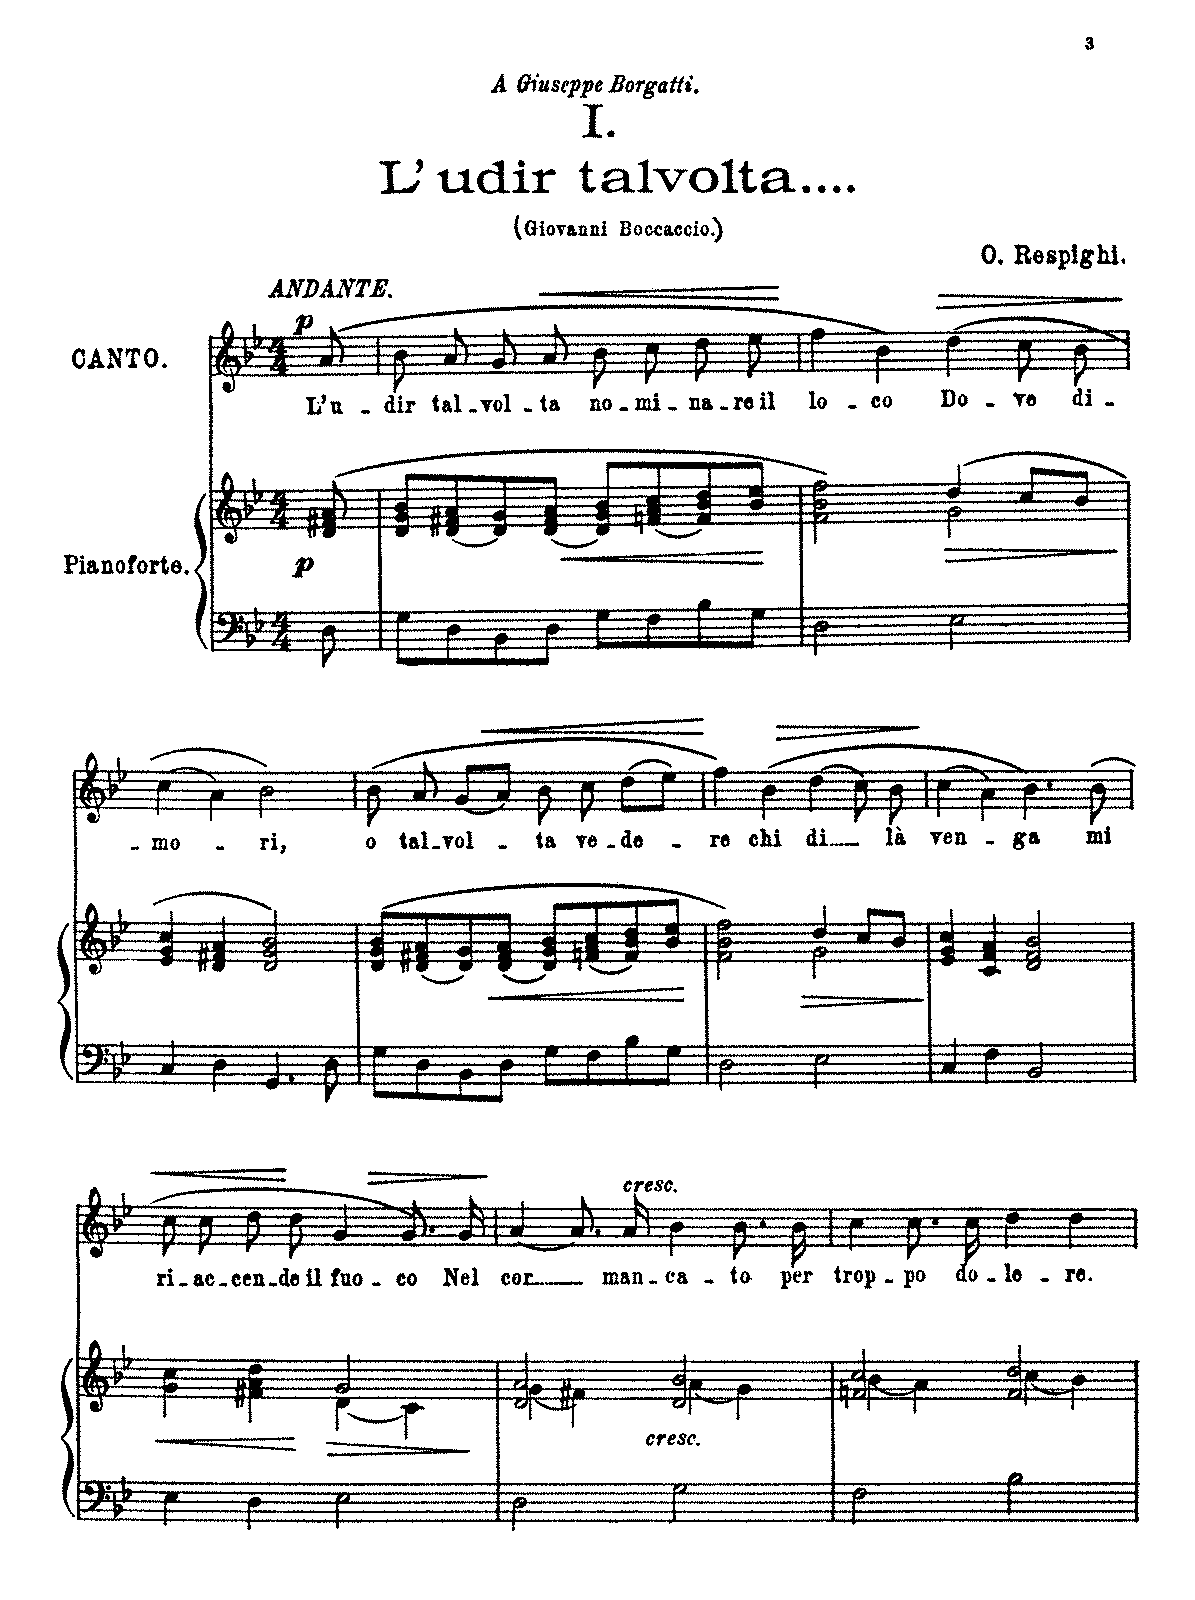 PMLP200694-Respighi - 5 Canti all'antica (voice and piano).pdf